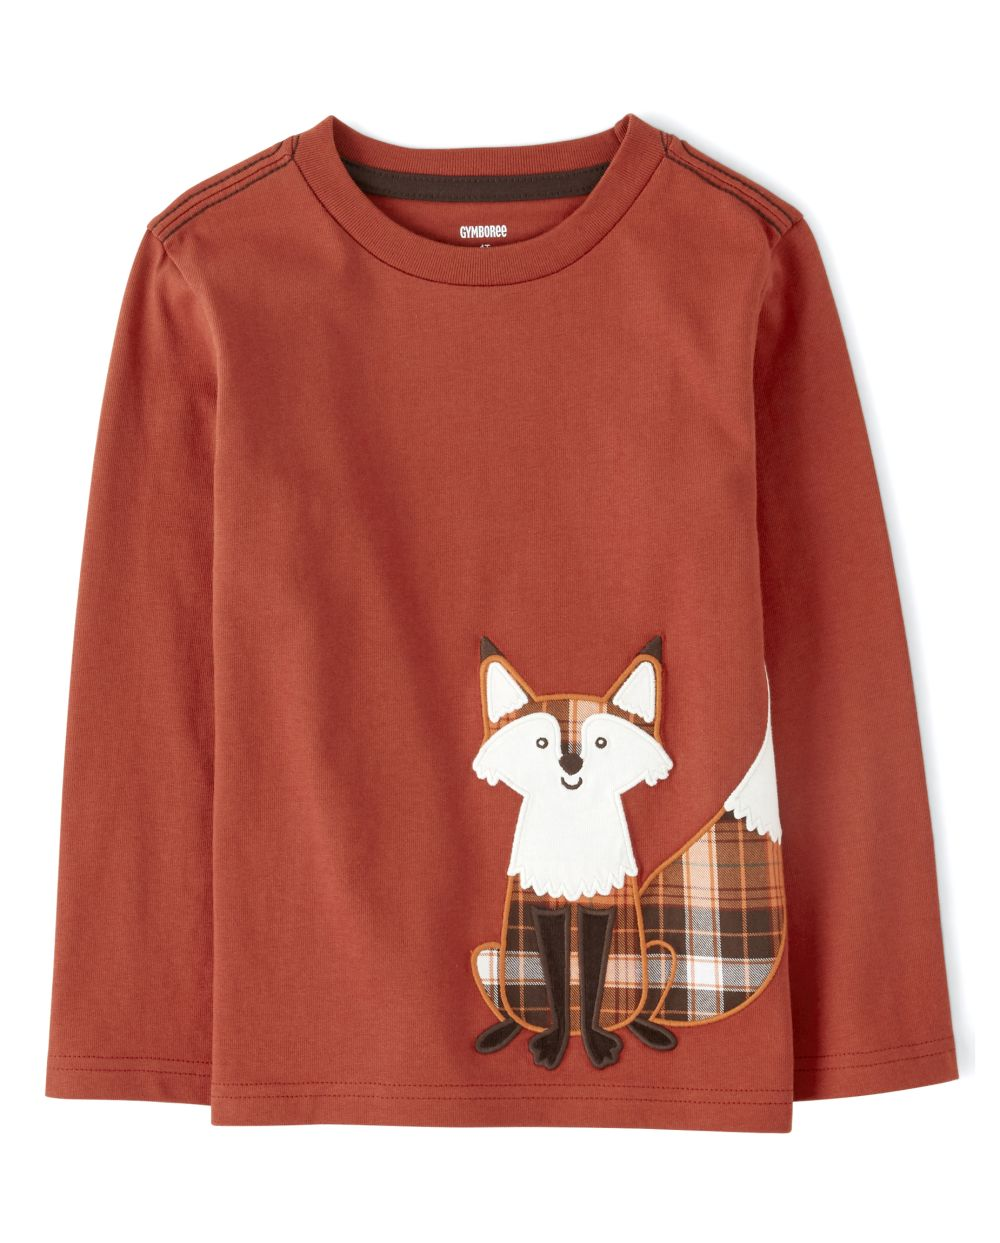 Boys Embroidered Fox Top - Harvest